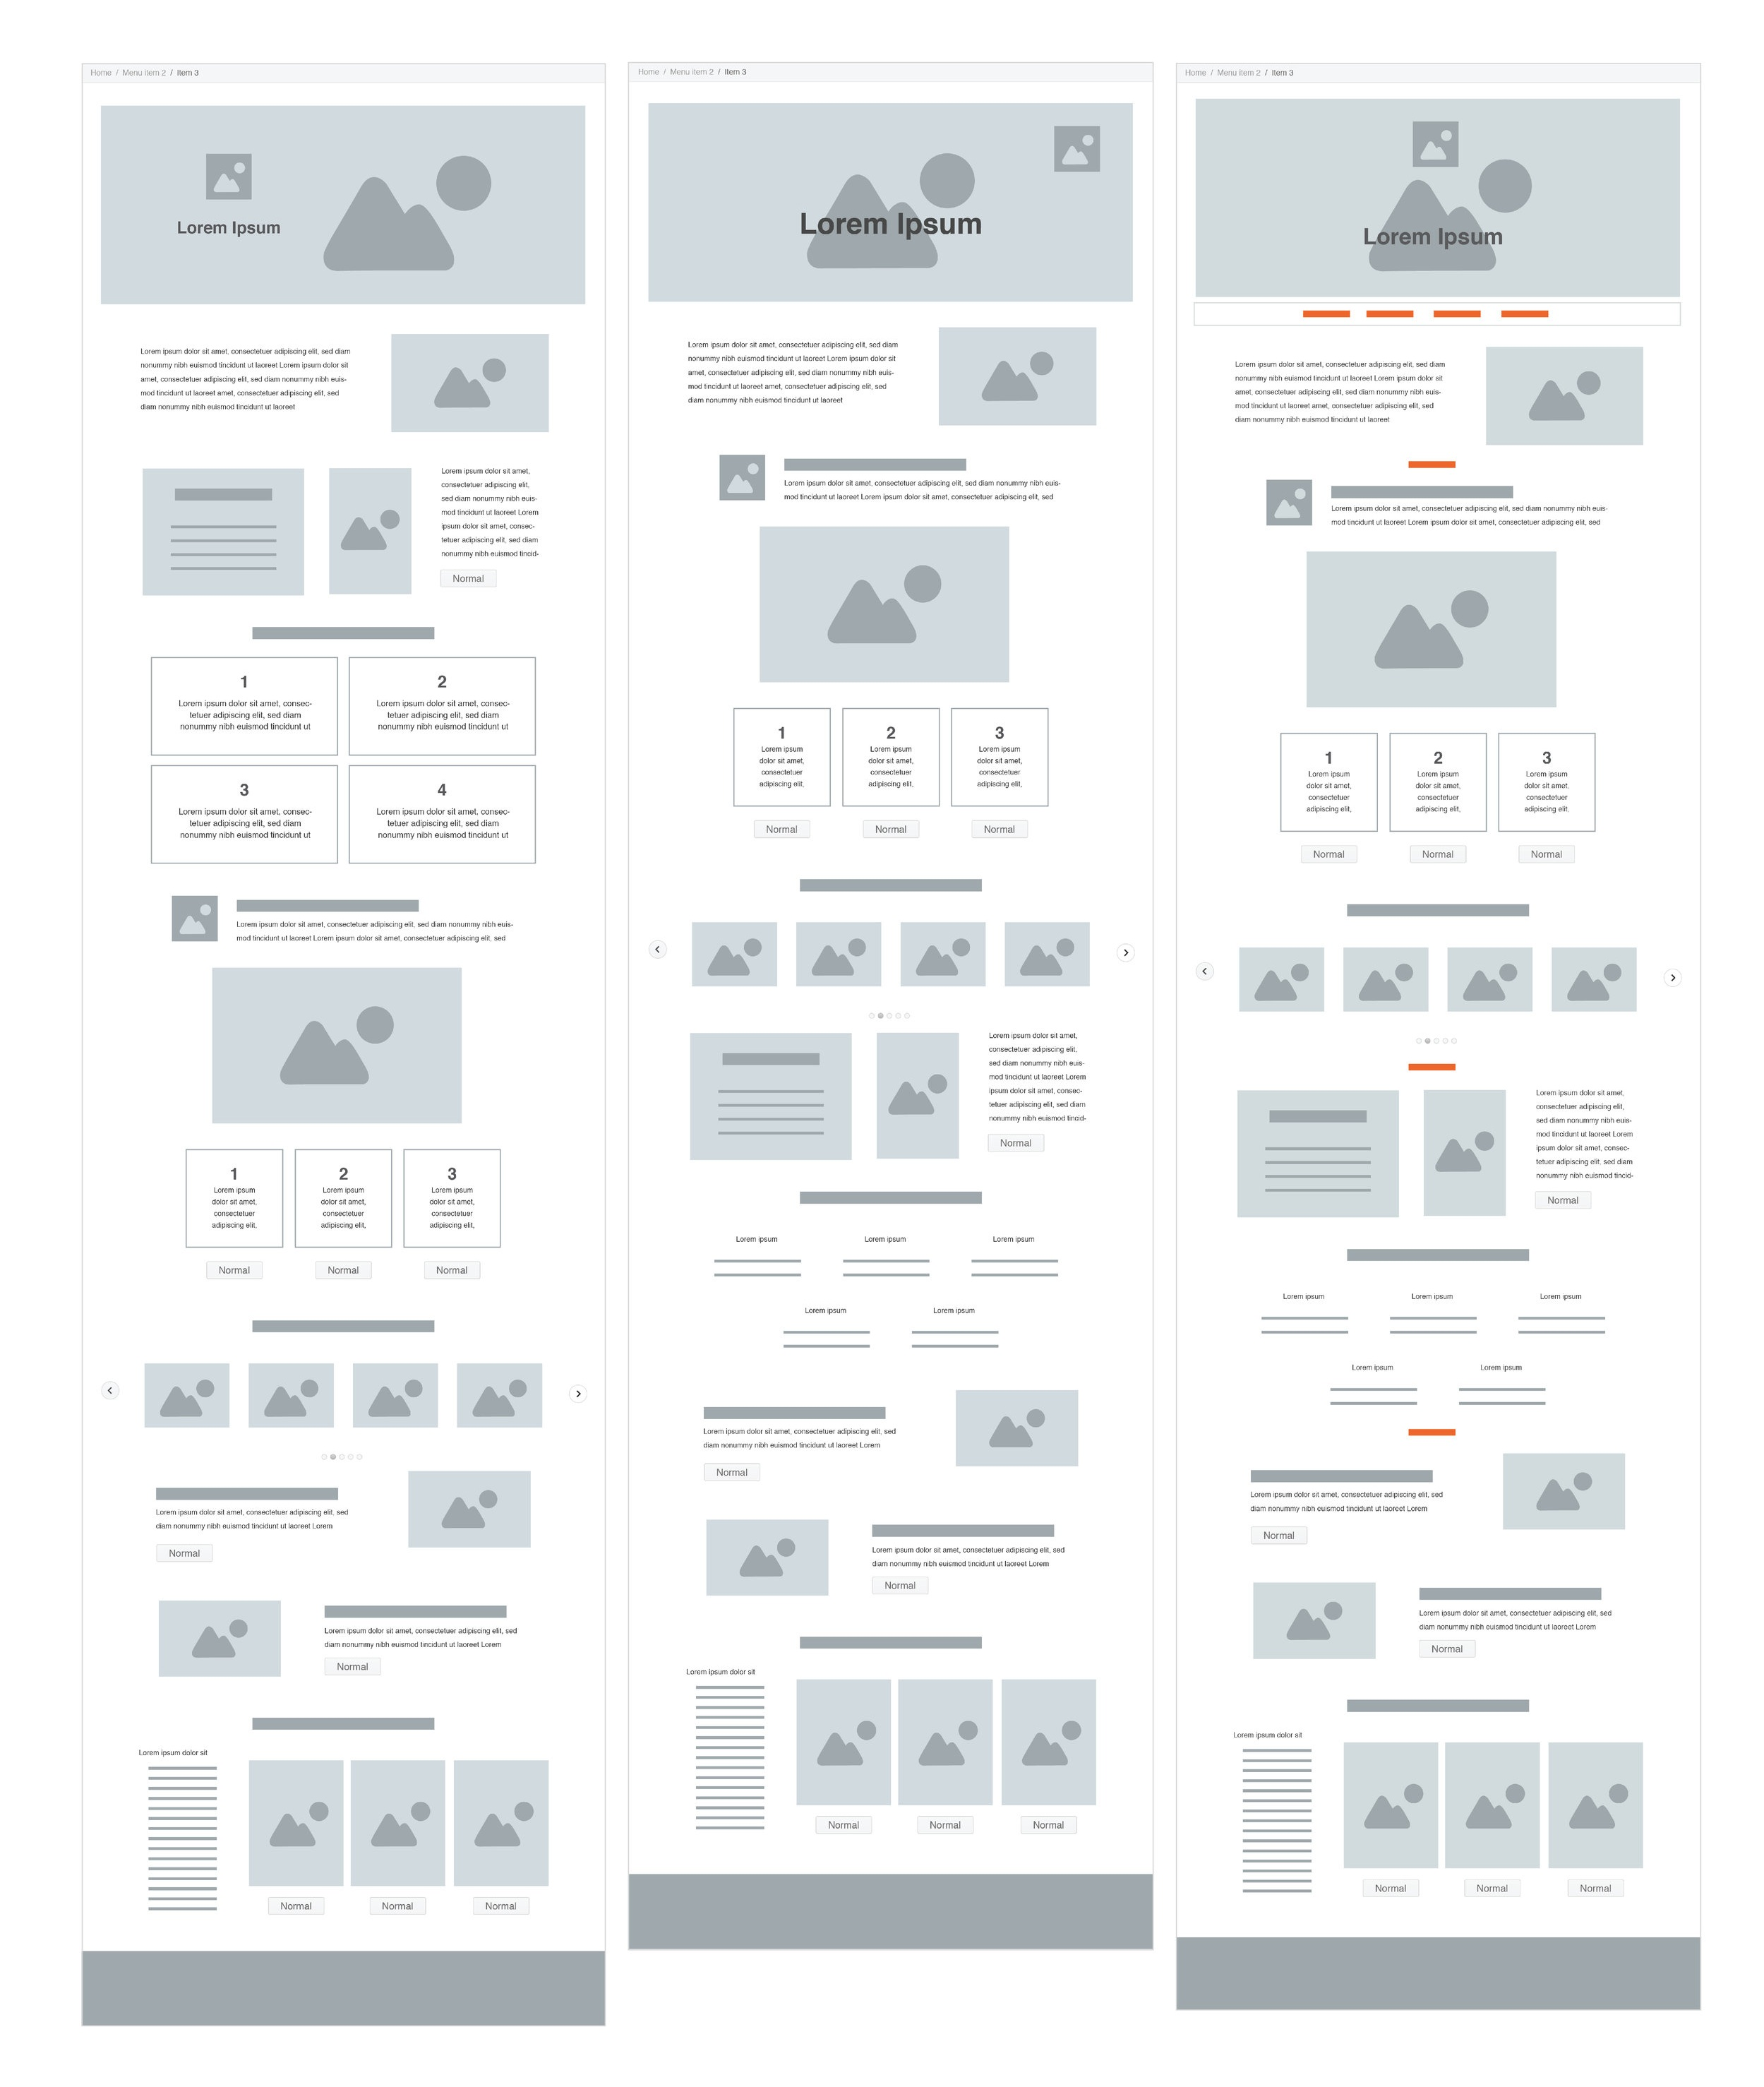 Many renditions of wireframes and designs were executed of the span of this project timeline. Eventually parts were removed and a secondary navigation was placed throughout the page for users to navigate to what they were most interested in quickly-the story or the product.